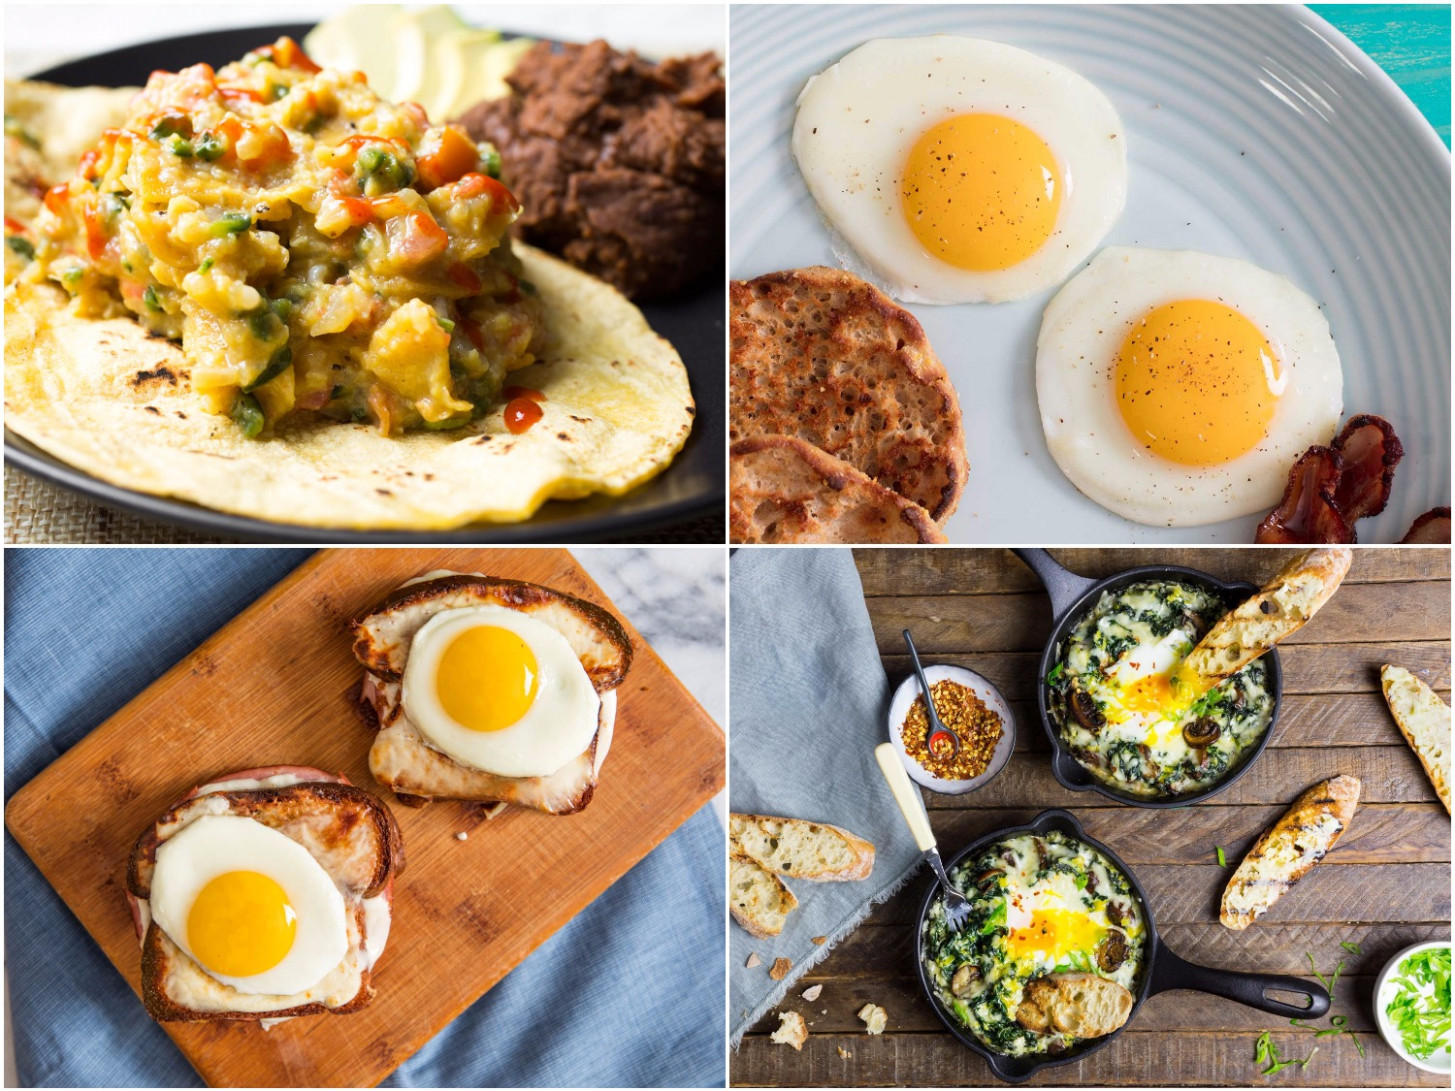 13 Egg Breakfast Recipes to Start Your Day | Serious Eats - recipes using egg yolks healthy